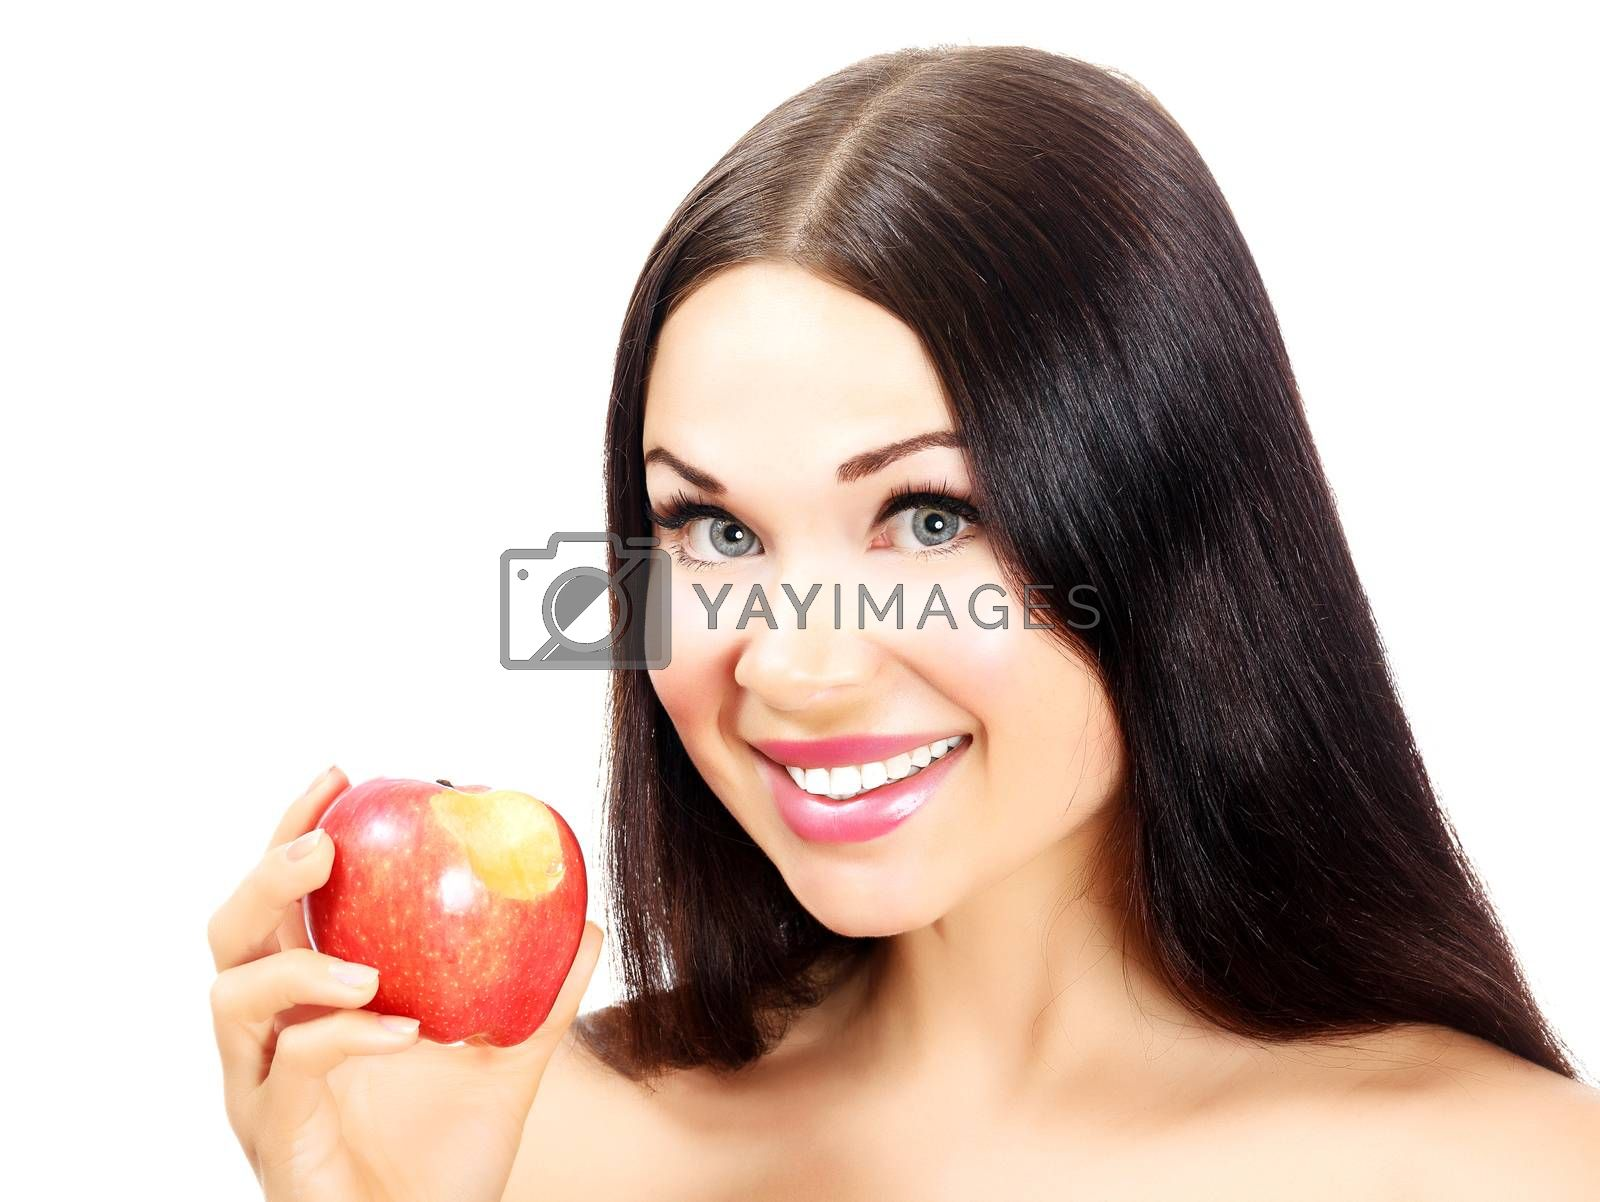 Woman with apple, white background, isolated